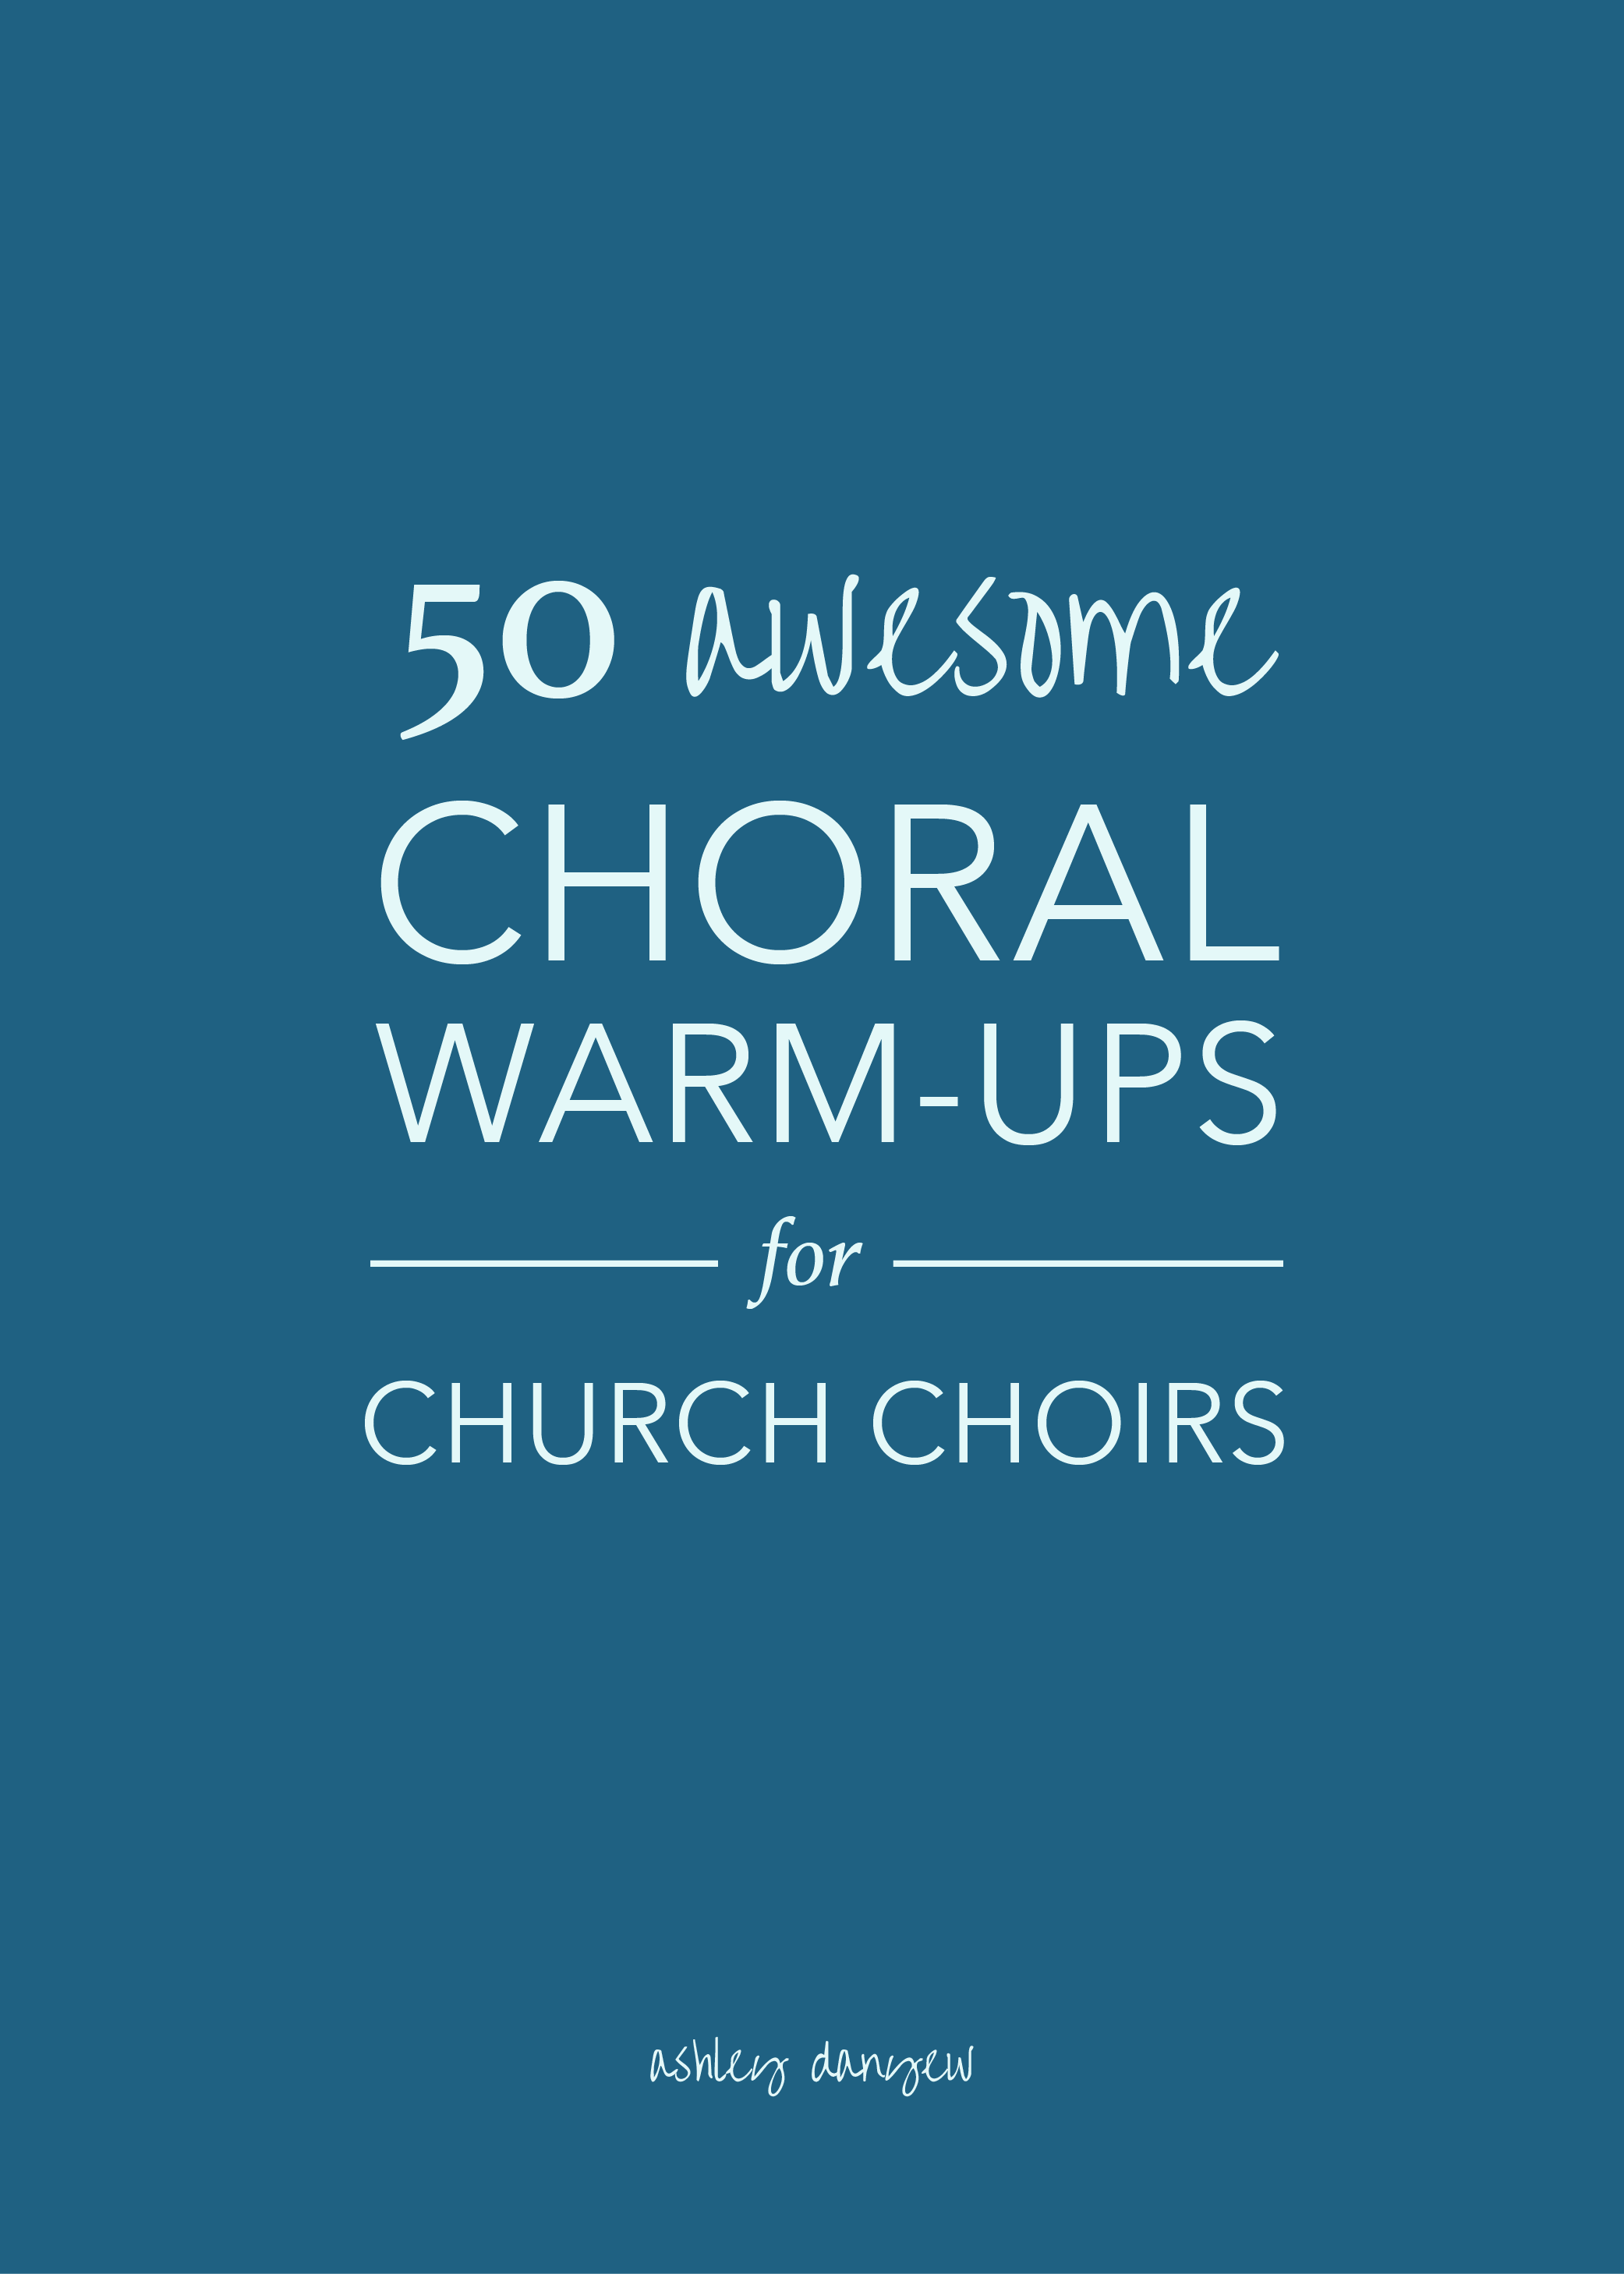 50 Awesome Choral Warm-Ups for Church Choirs-01.png